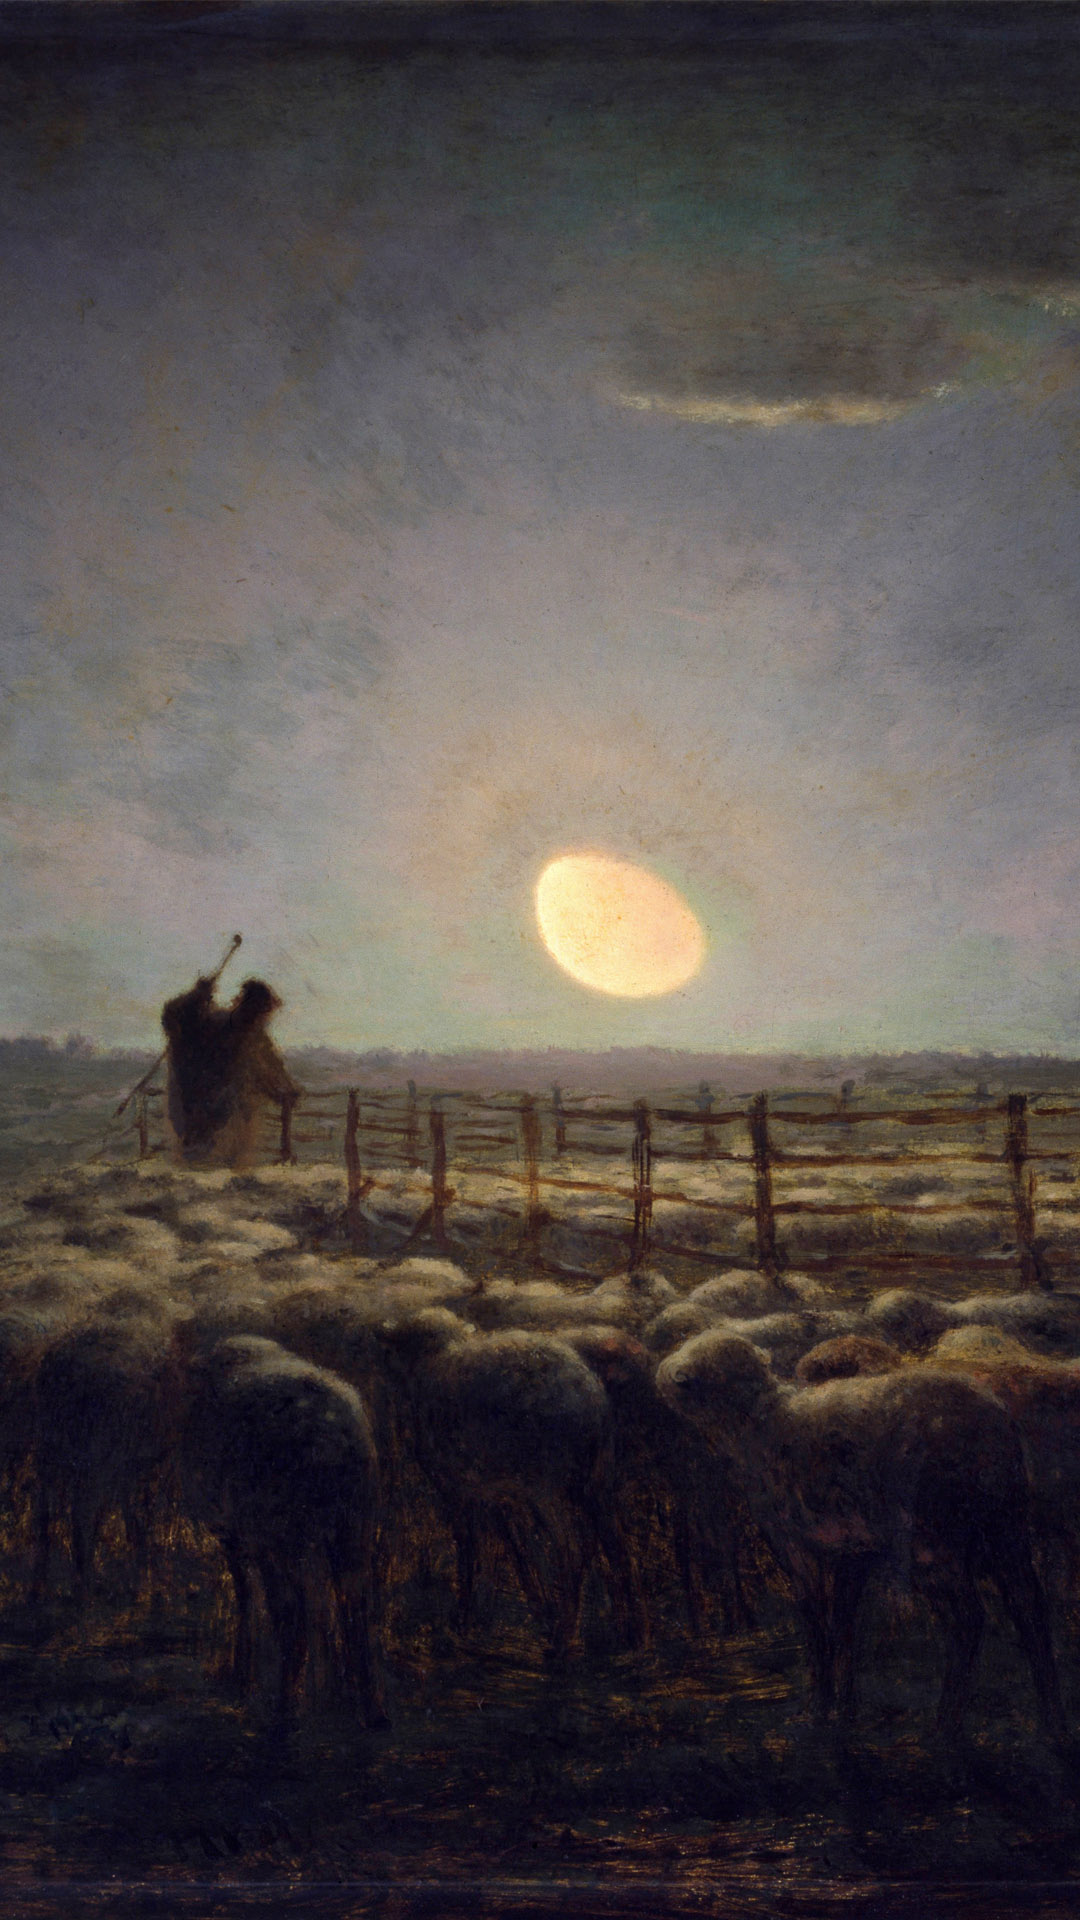 Jean-François Millet - The Sheepfold Moonlight 1080x1920